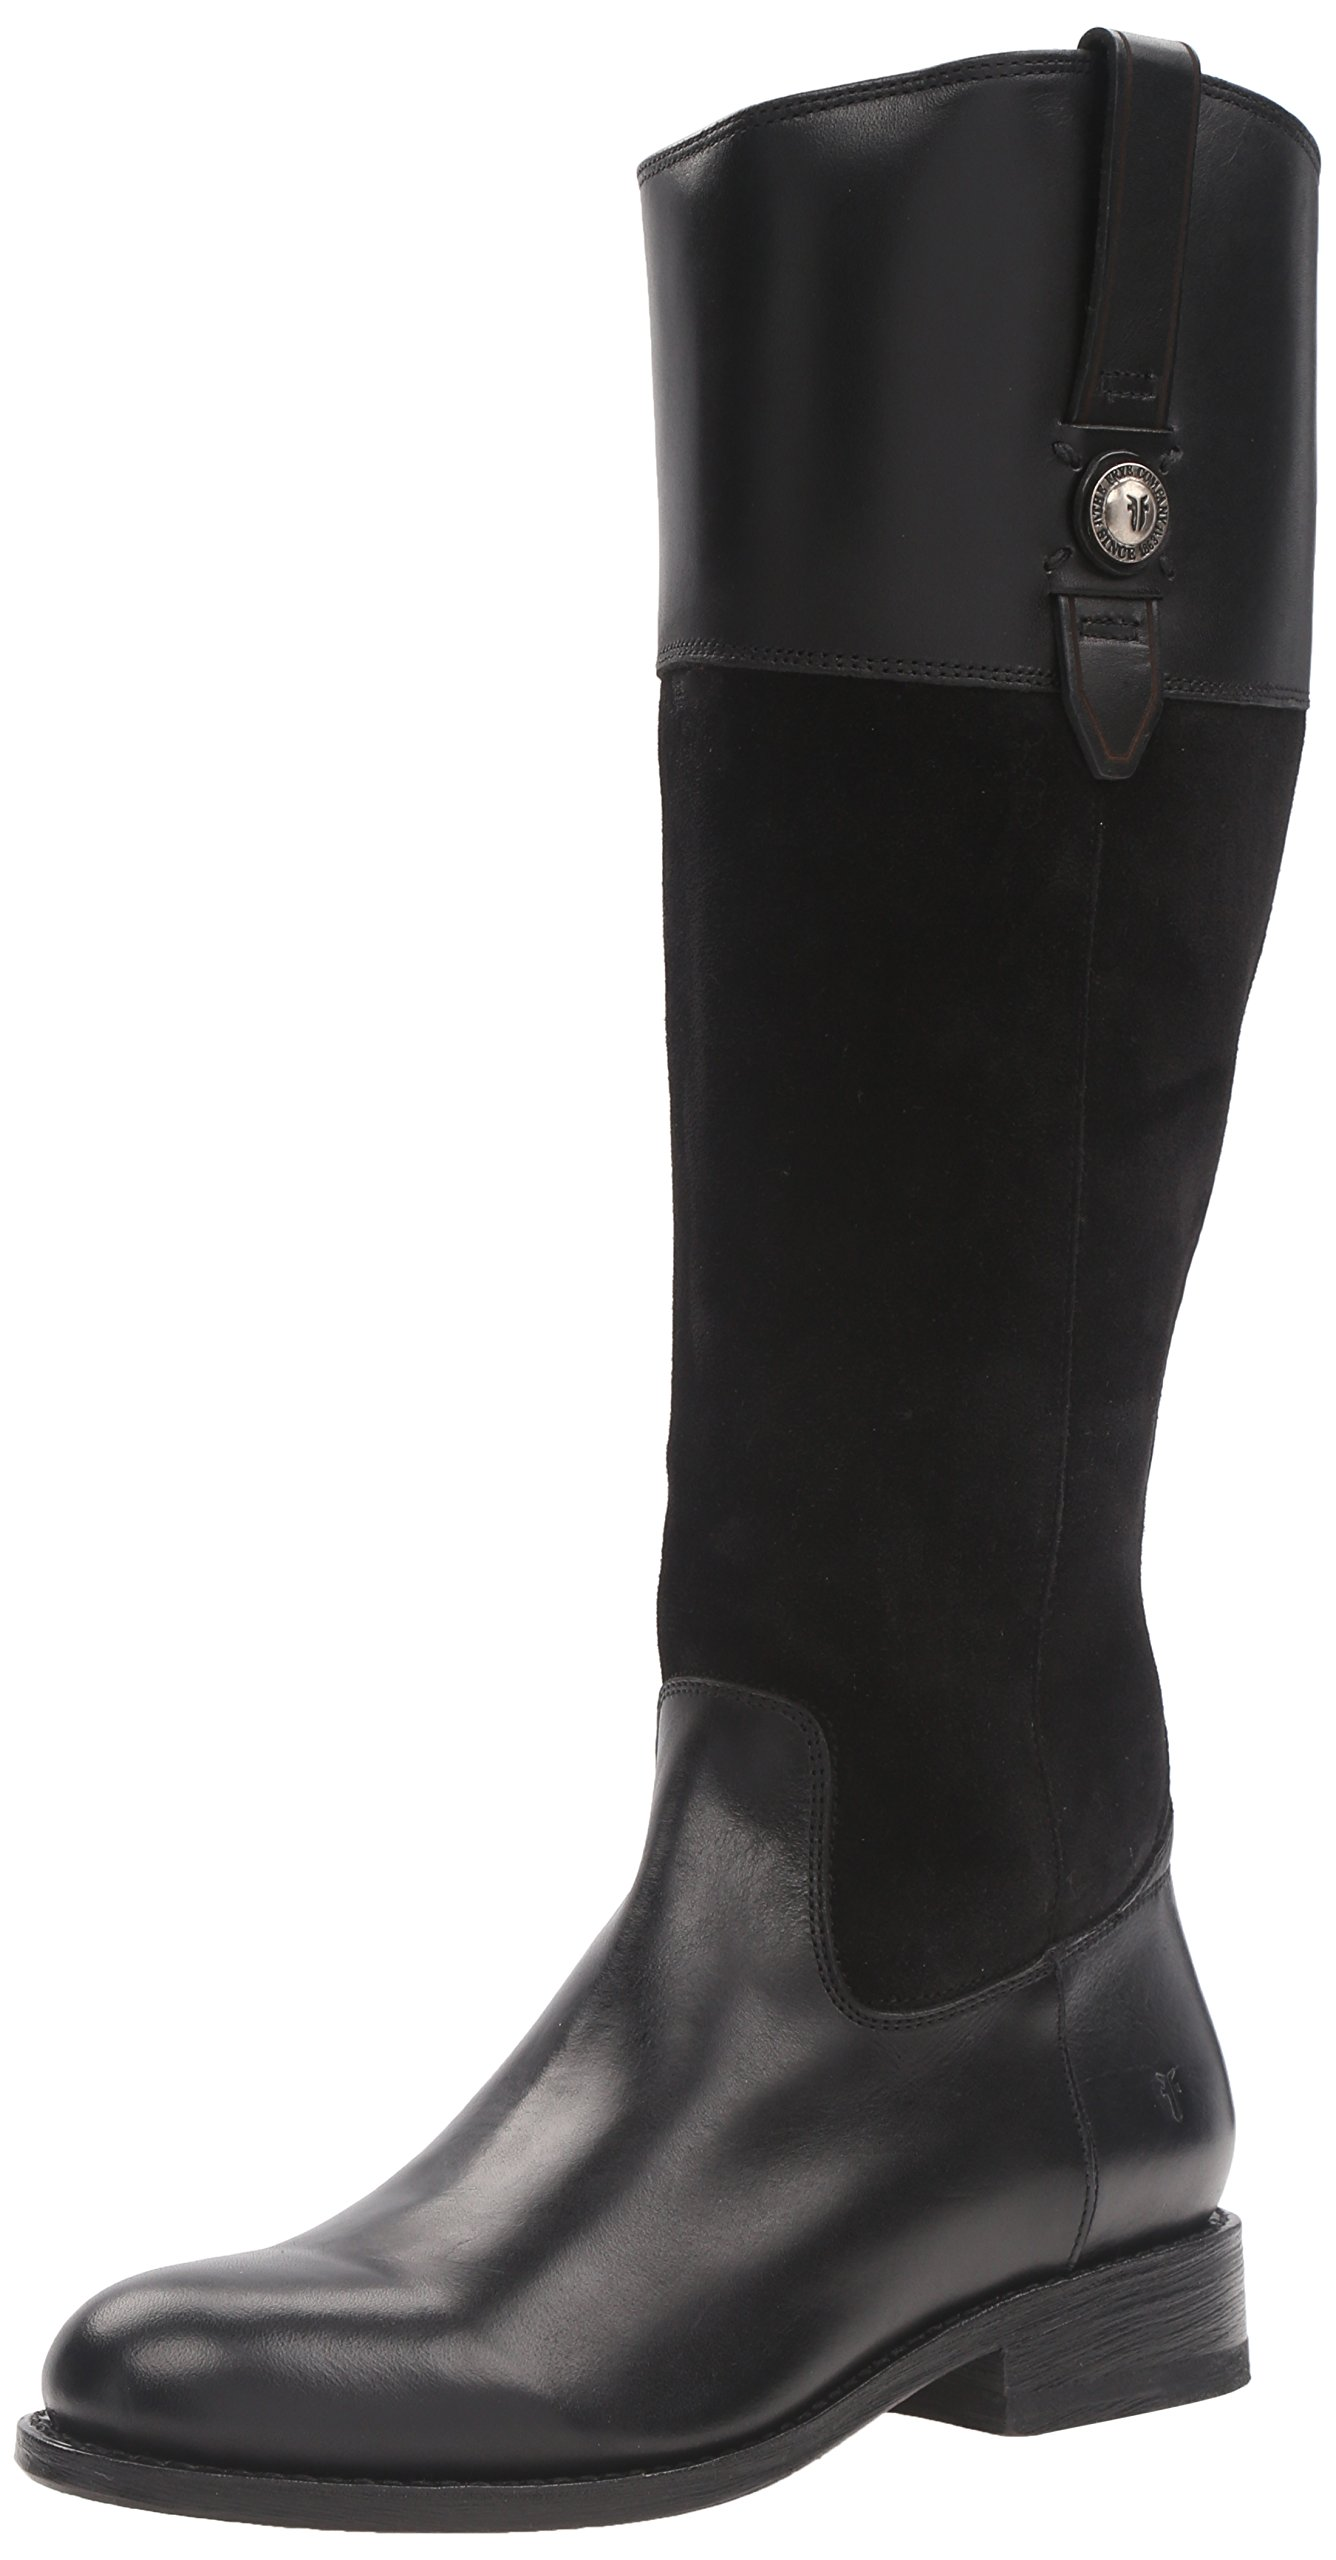 FRYE Women's Jayden Button Tall Leather and Suede Riding Boot, Black, 8.5 M US